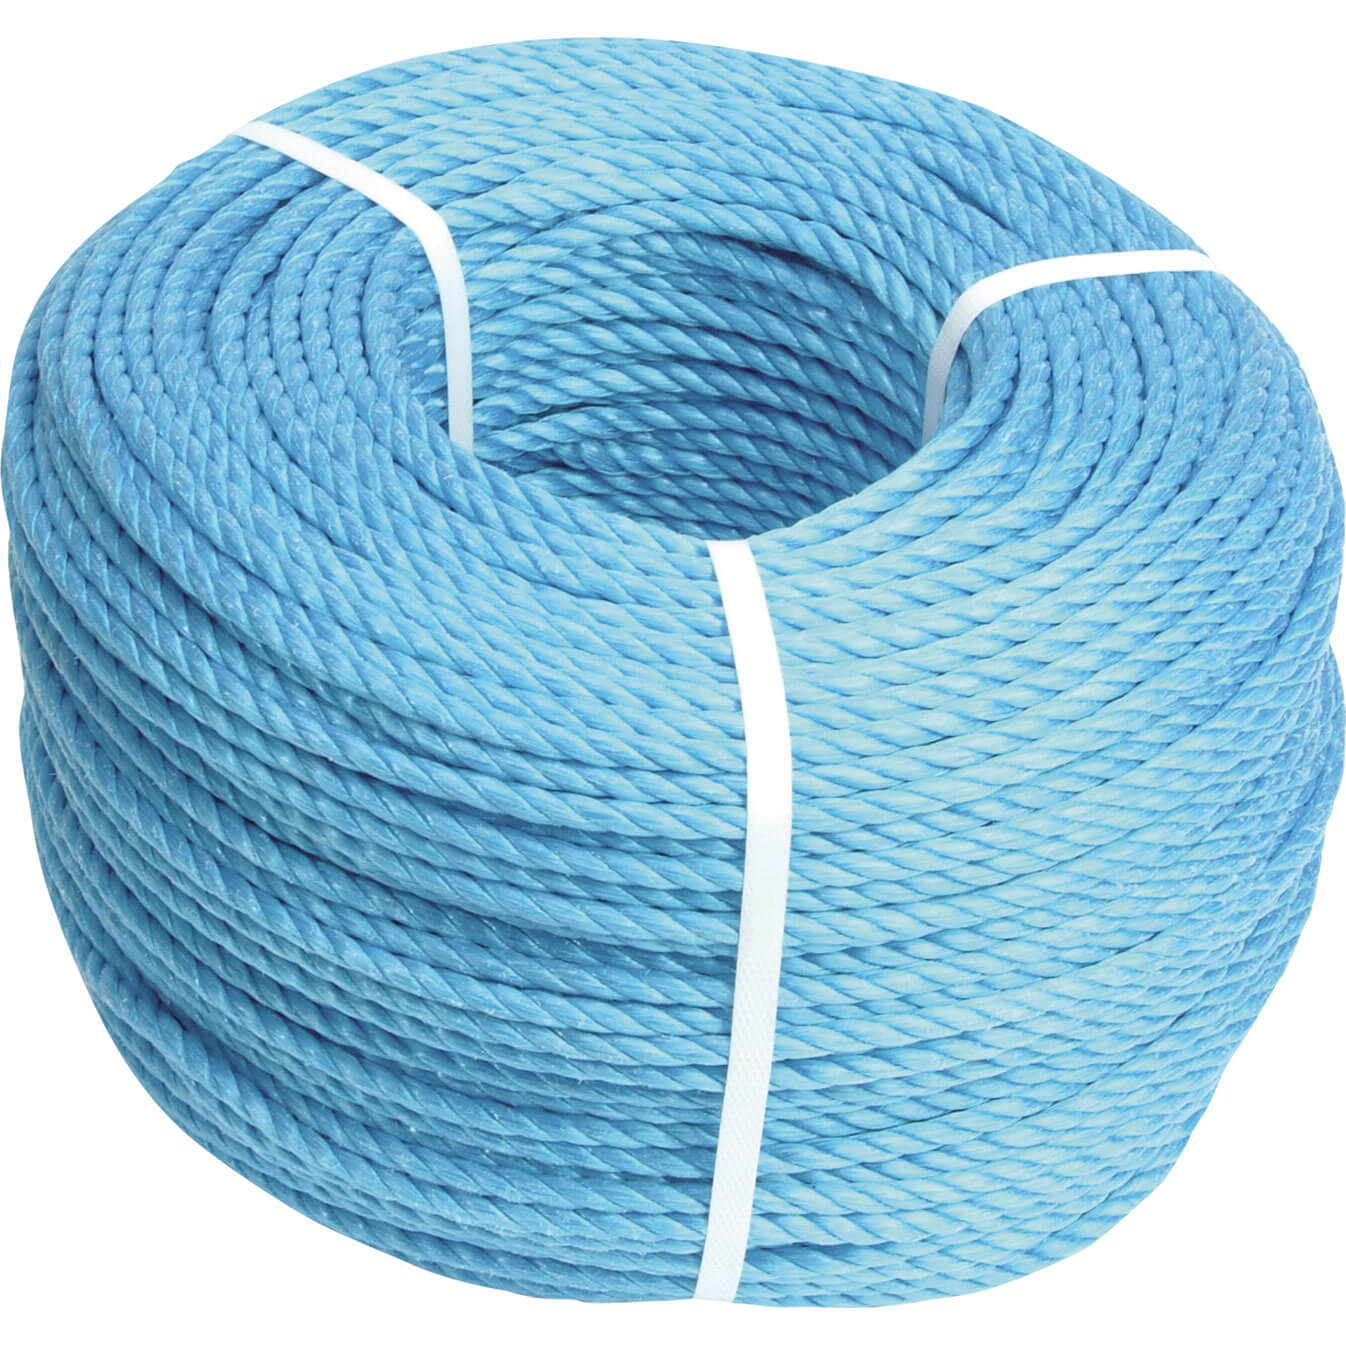 Faithfull Blue Polypropylene Rope 12mm x 30m